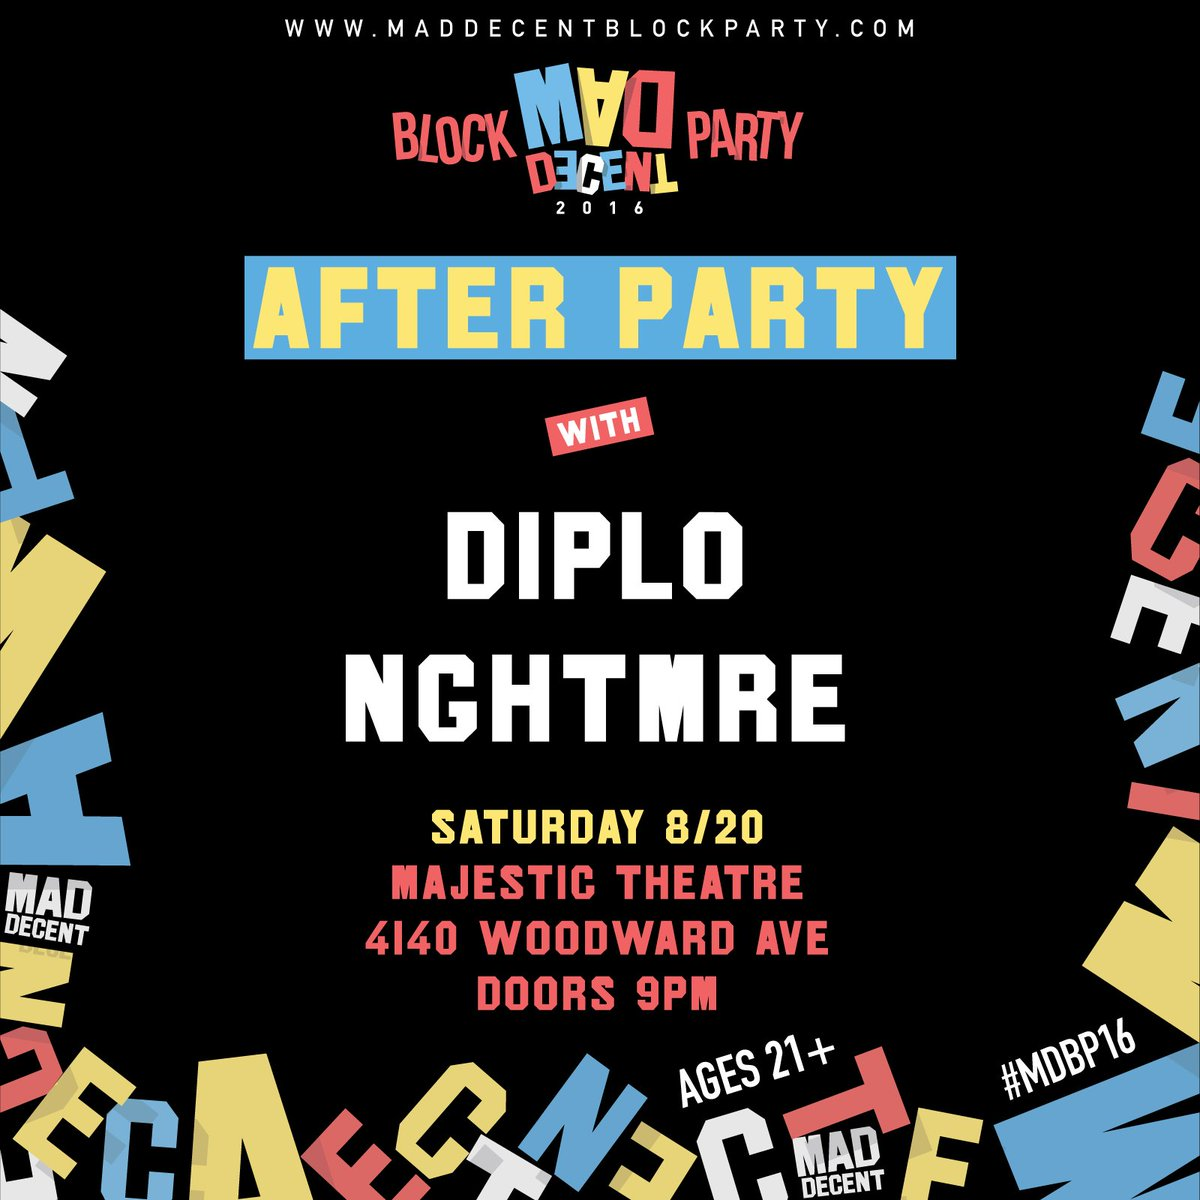 .@maddecent BP After Party will feature @diplo AND @NGHTMRE!!! Doors 9pm | 21+ | Tix: https://t.co/aGxKs0eed6 https://t.co/PpQymB2YFl